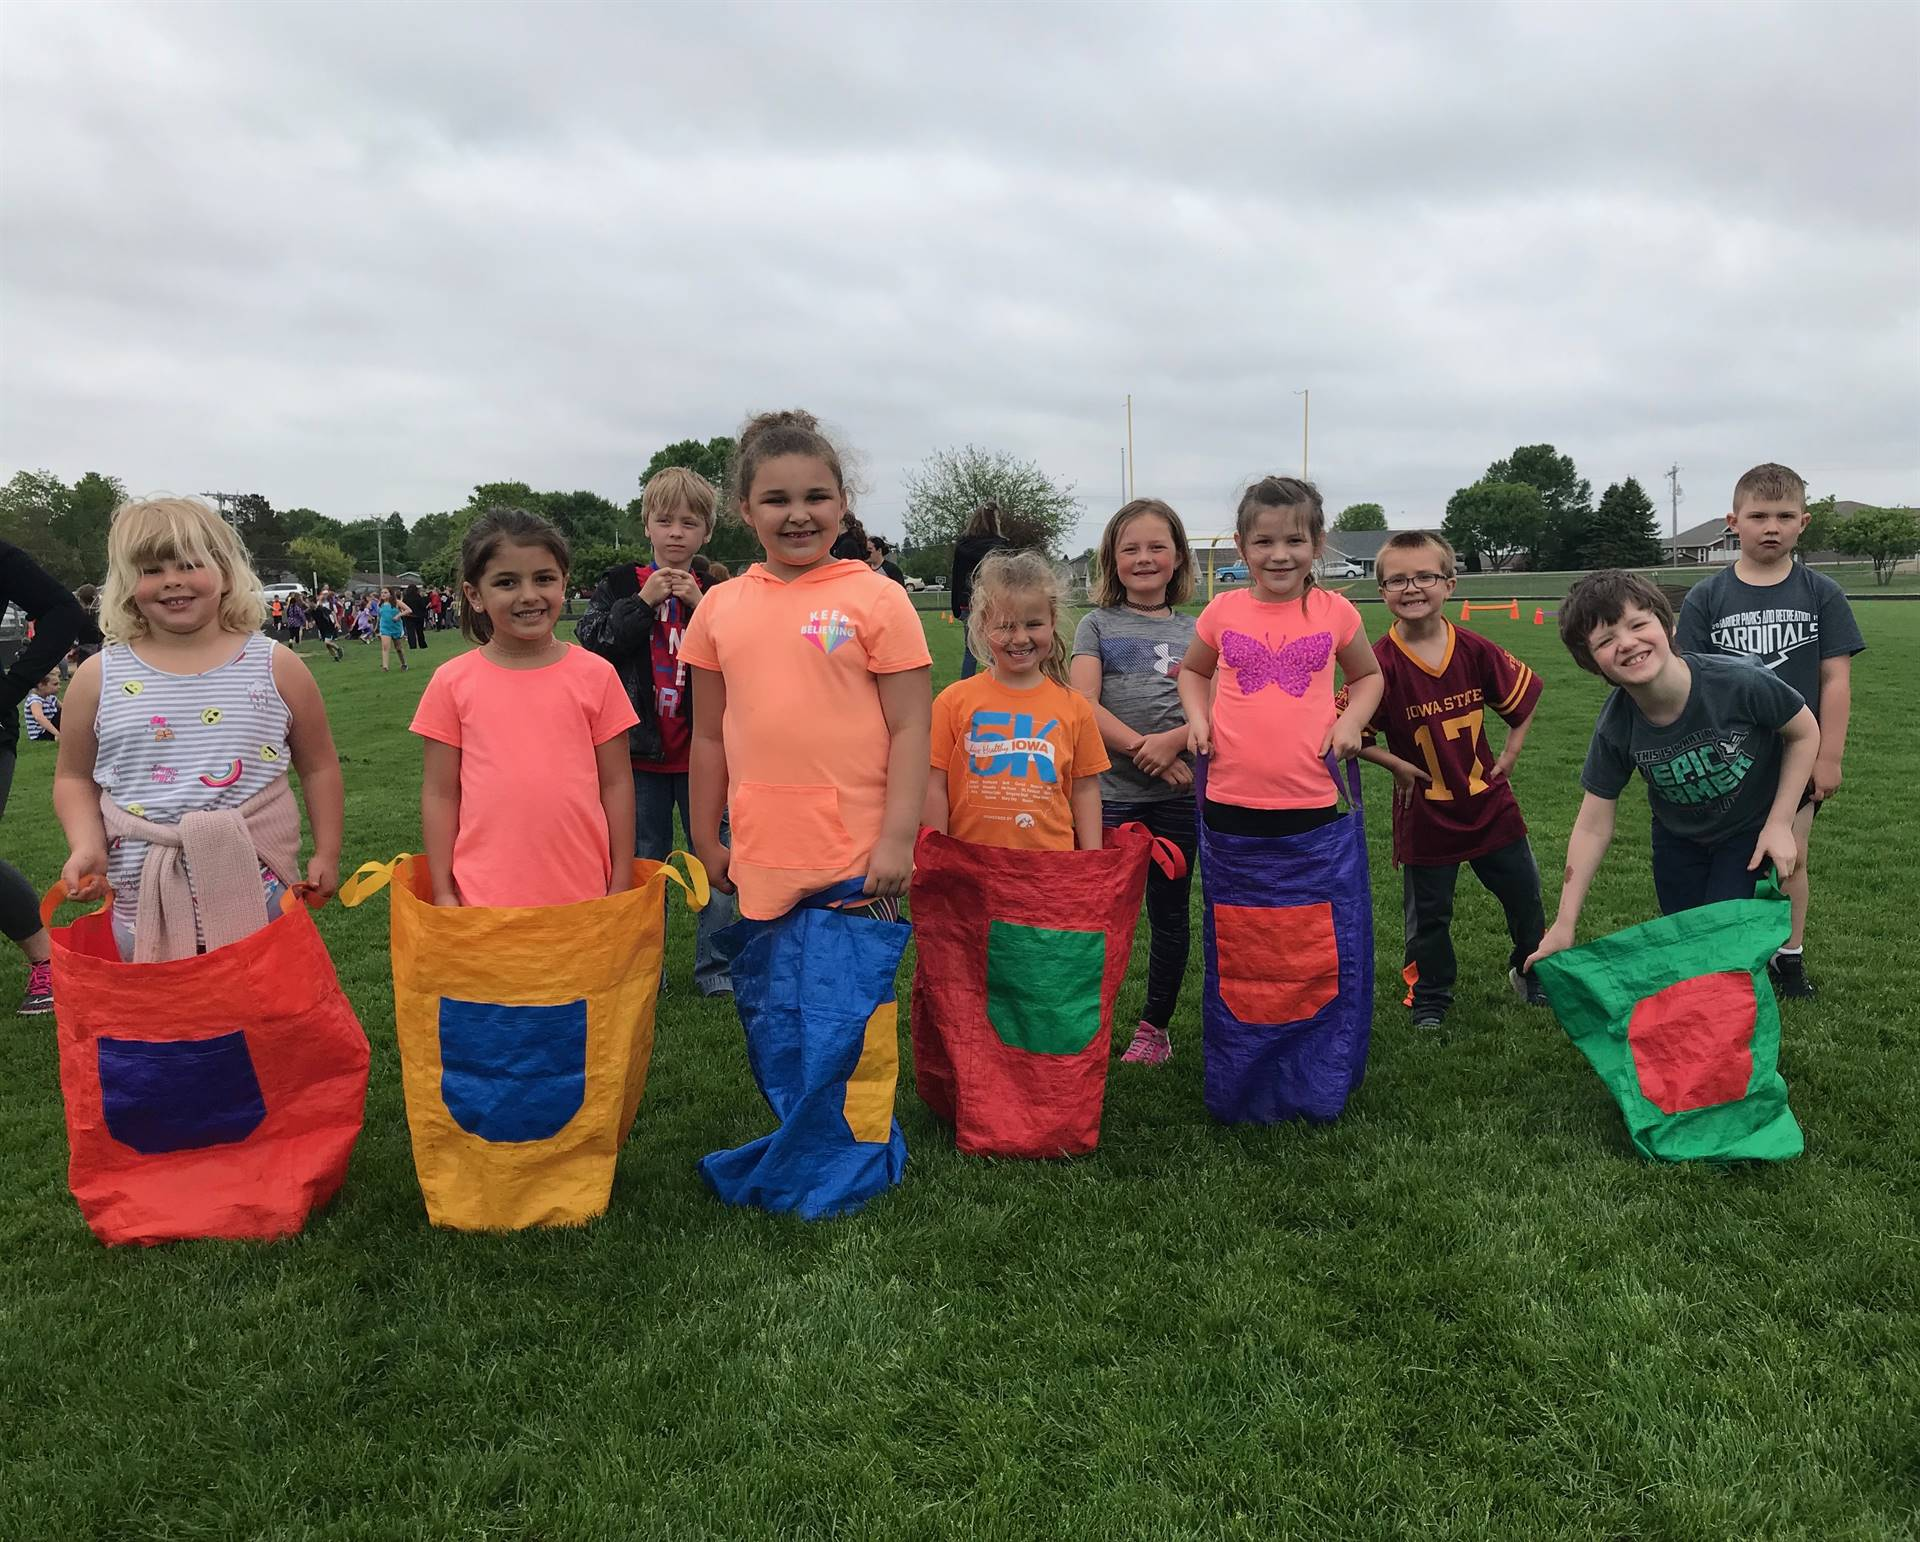 Students lined up in bean bag sacks at Track and Field Day for school